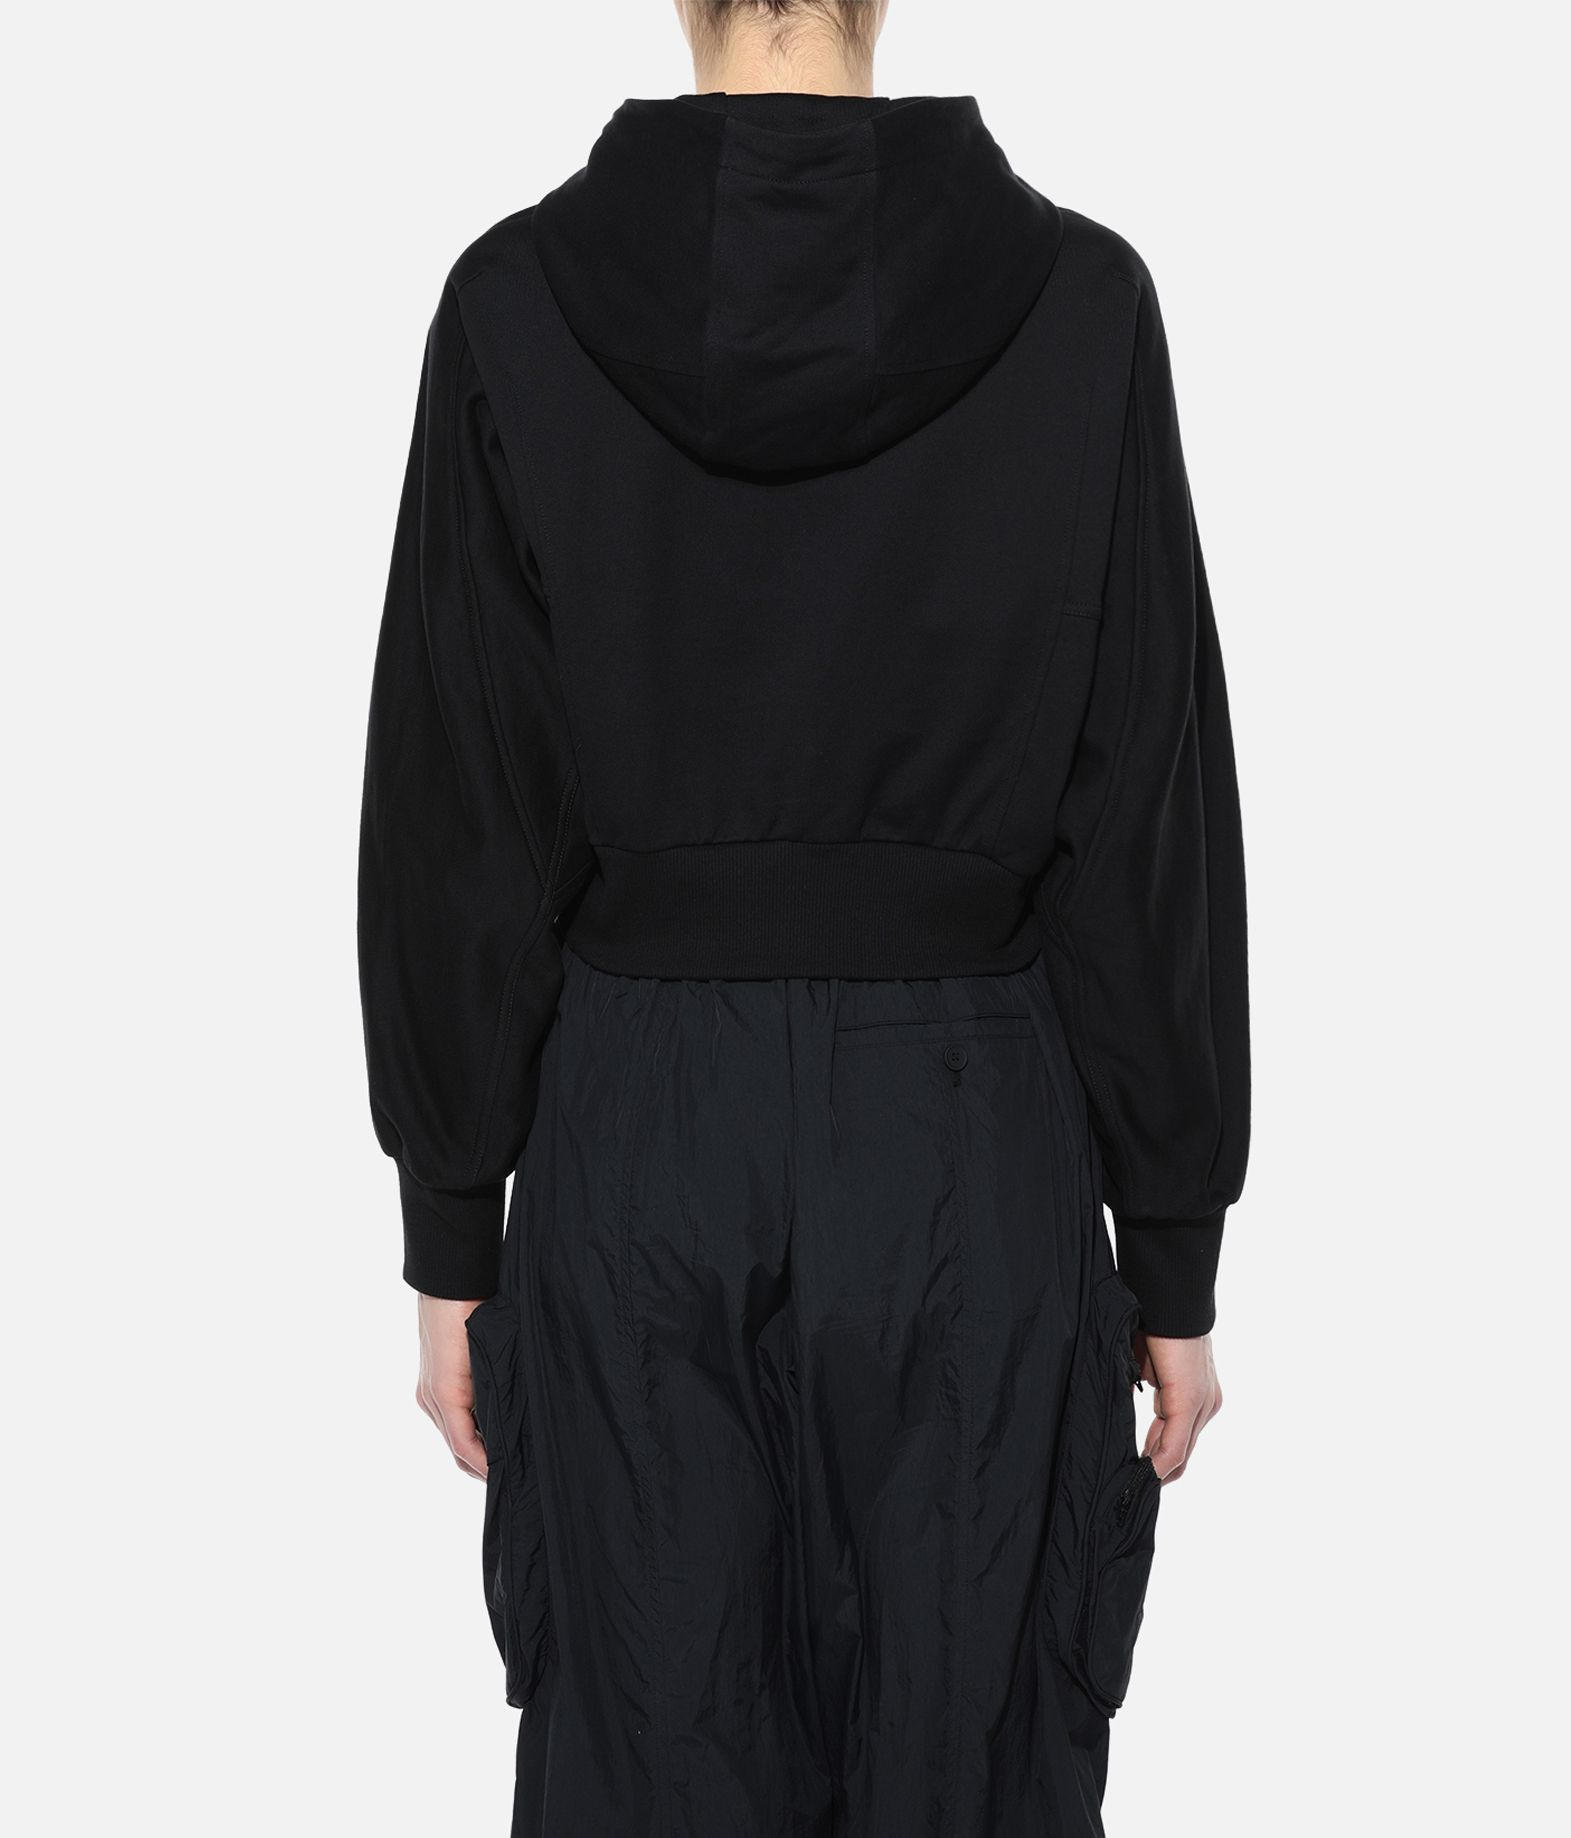 Y-3 Y-3 Stacked Badge Cropped Hoodie Hooded sweatshirt Woman d